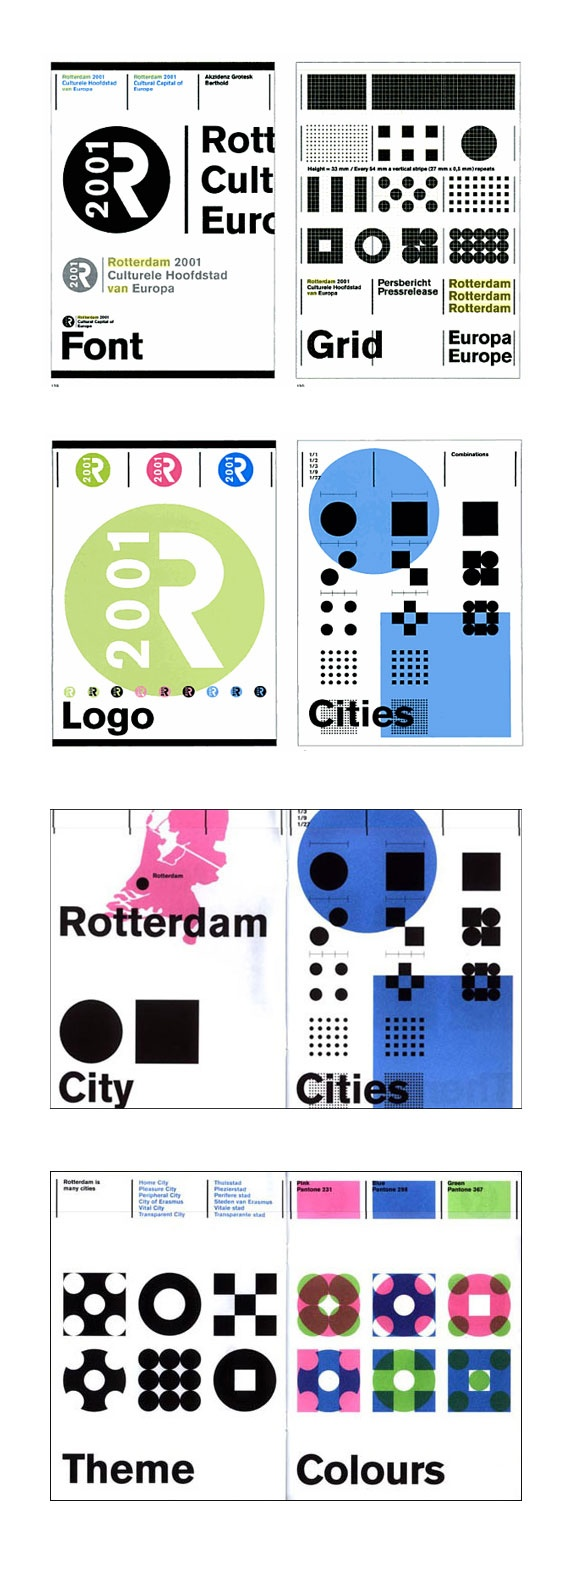 Rotterdam was European Capital of Culture in 2001.